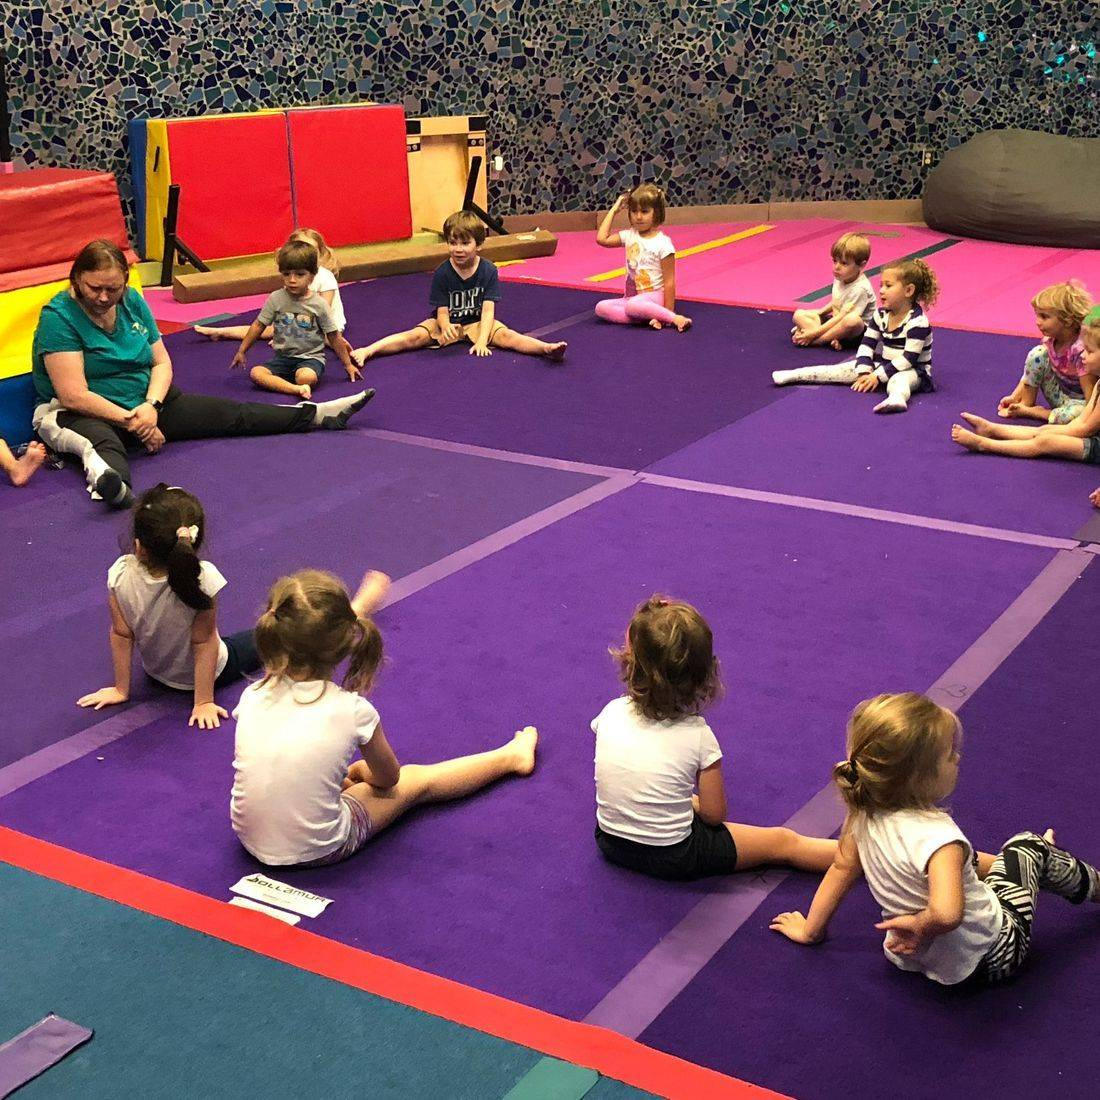 Camp ages 4-8 year olds warm up